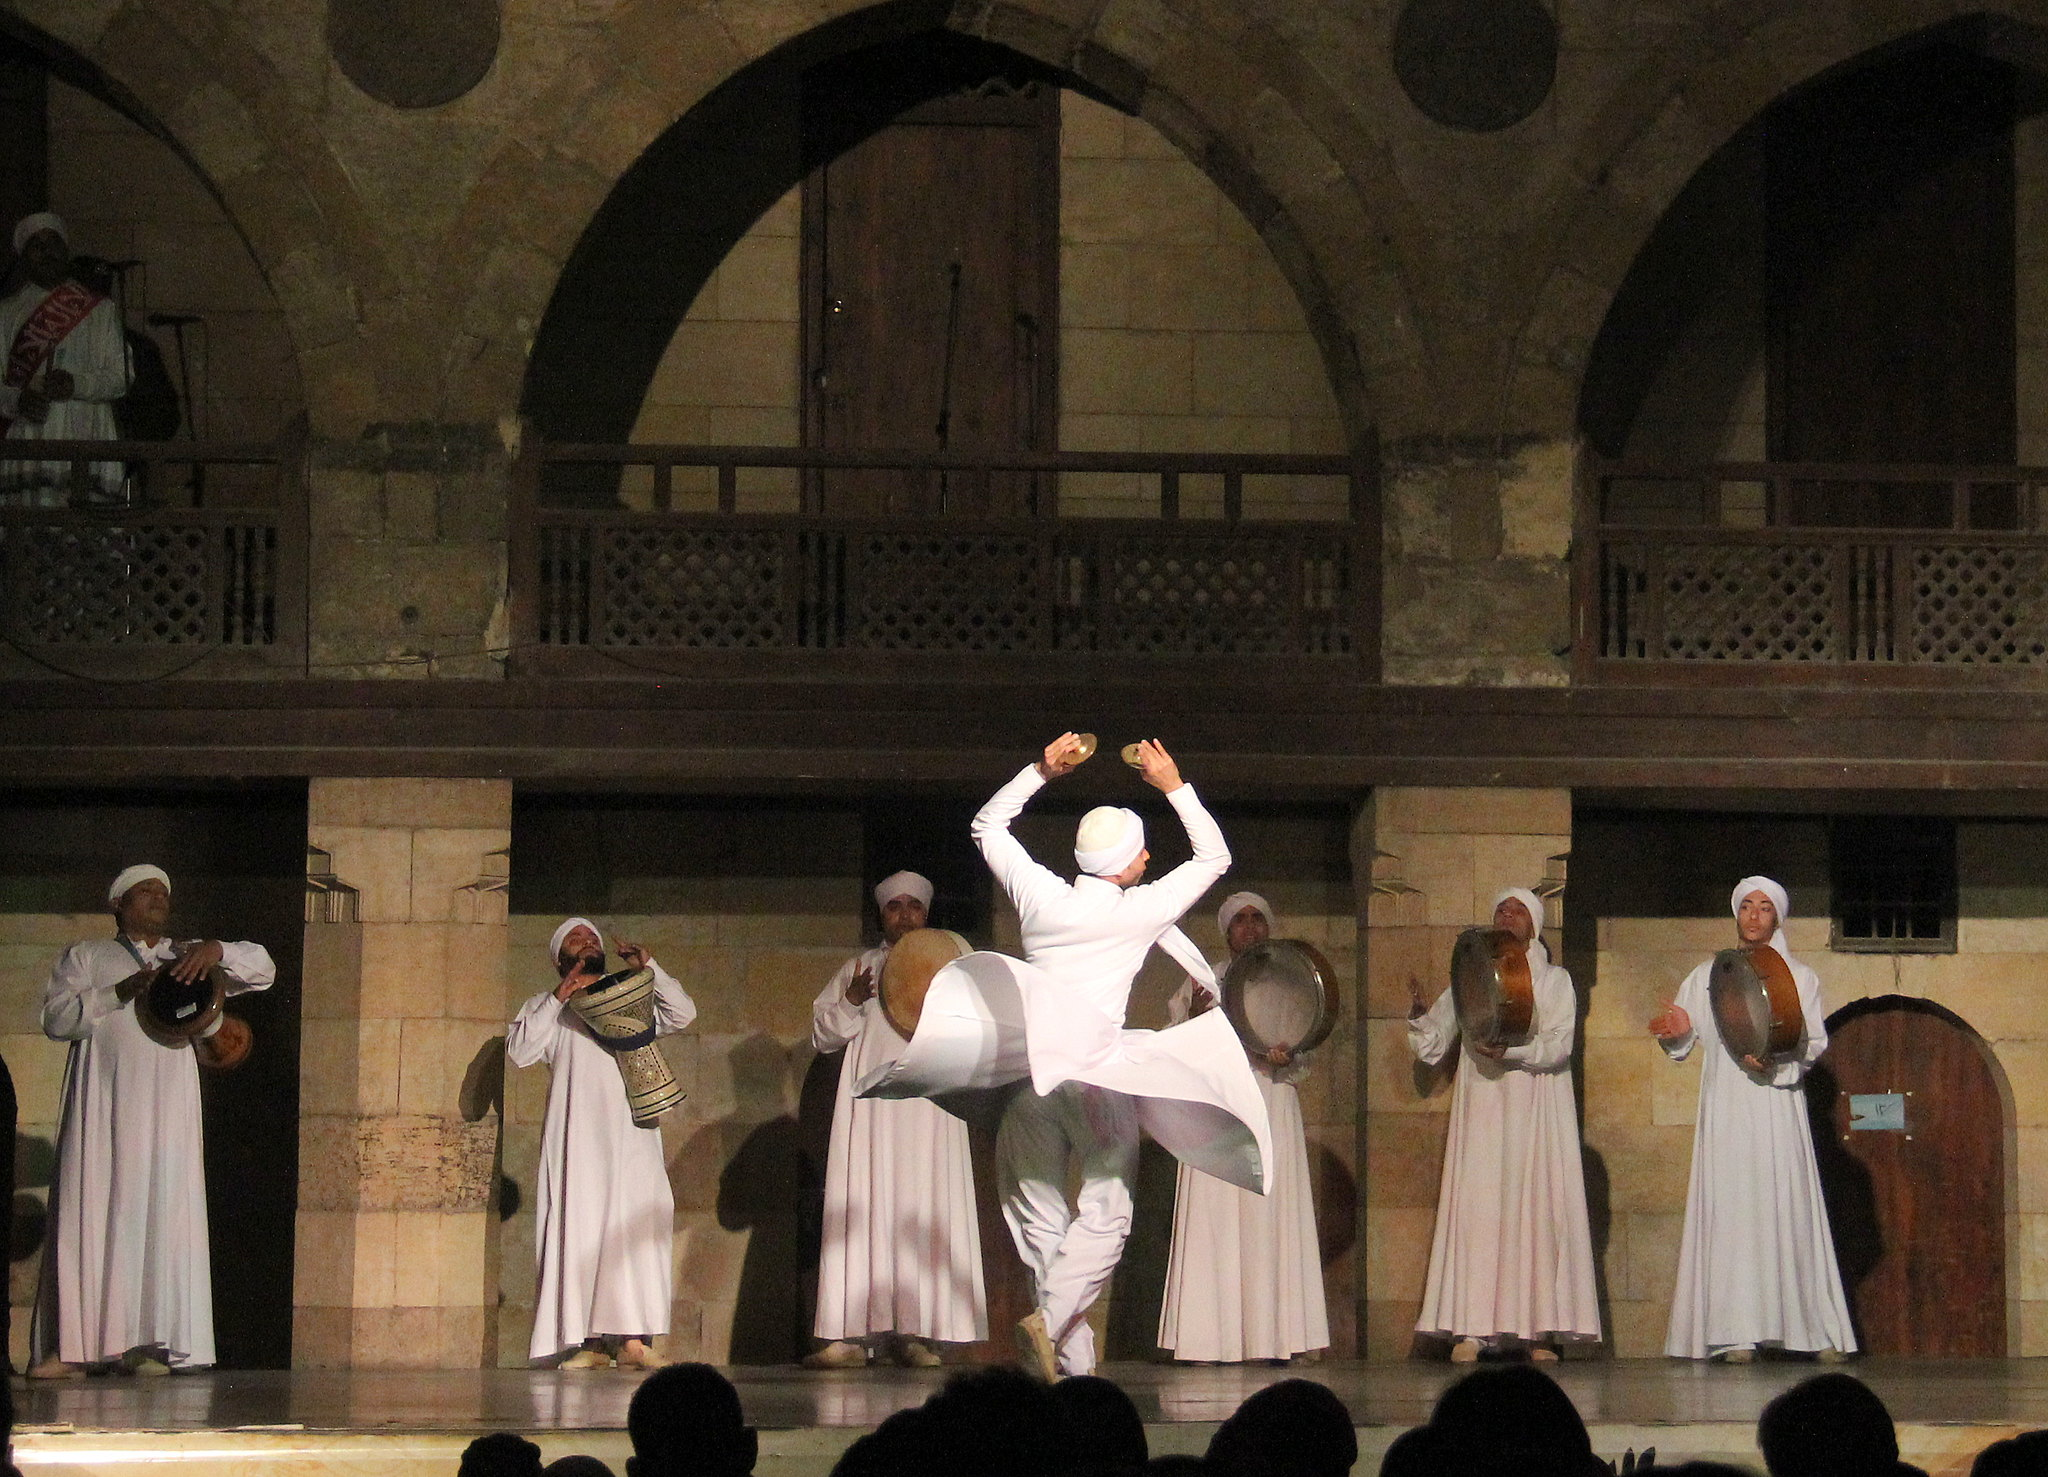 Tanoura show can be seen at Cairo